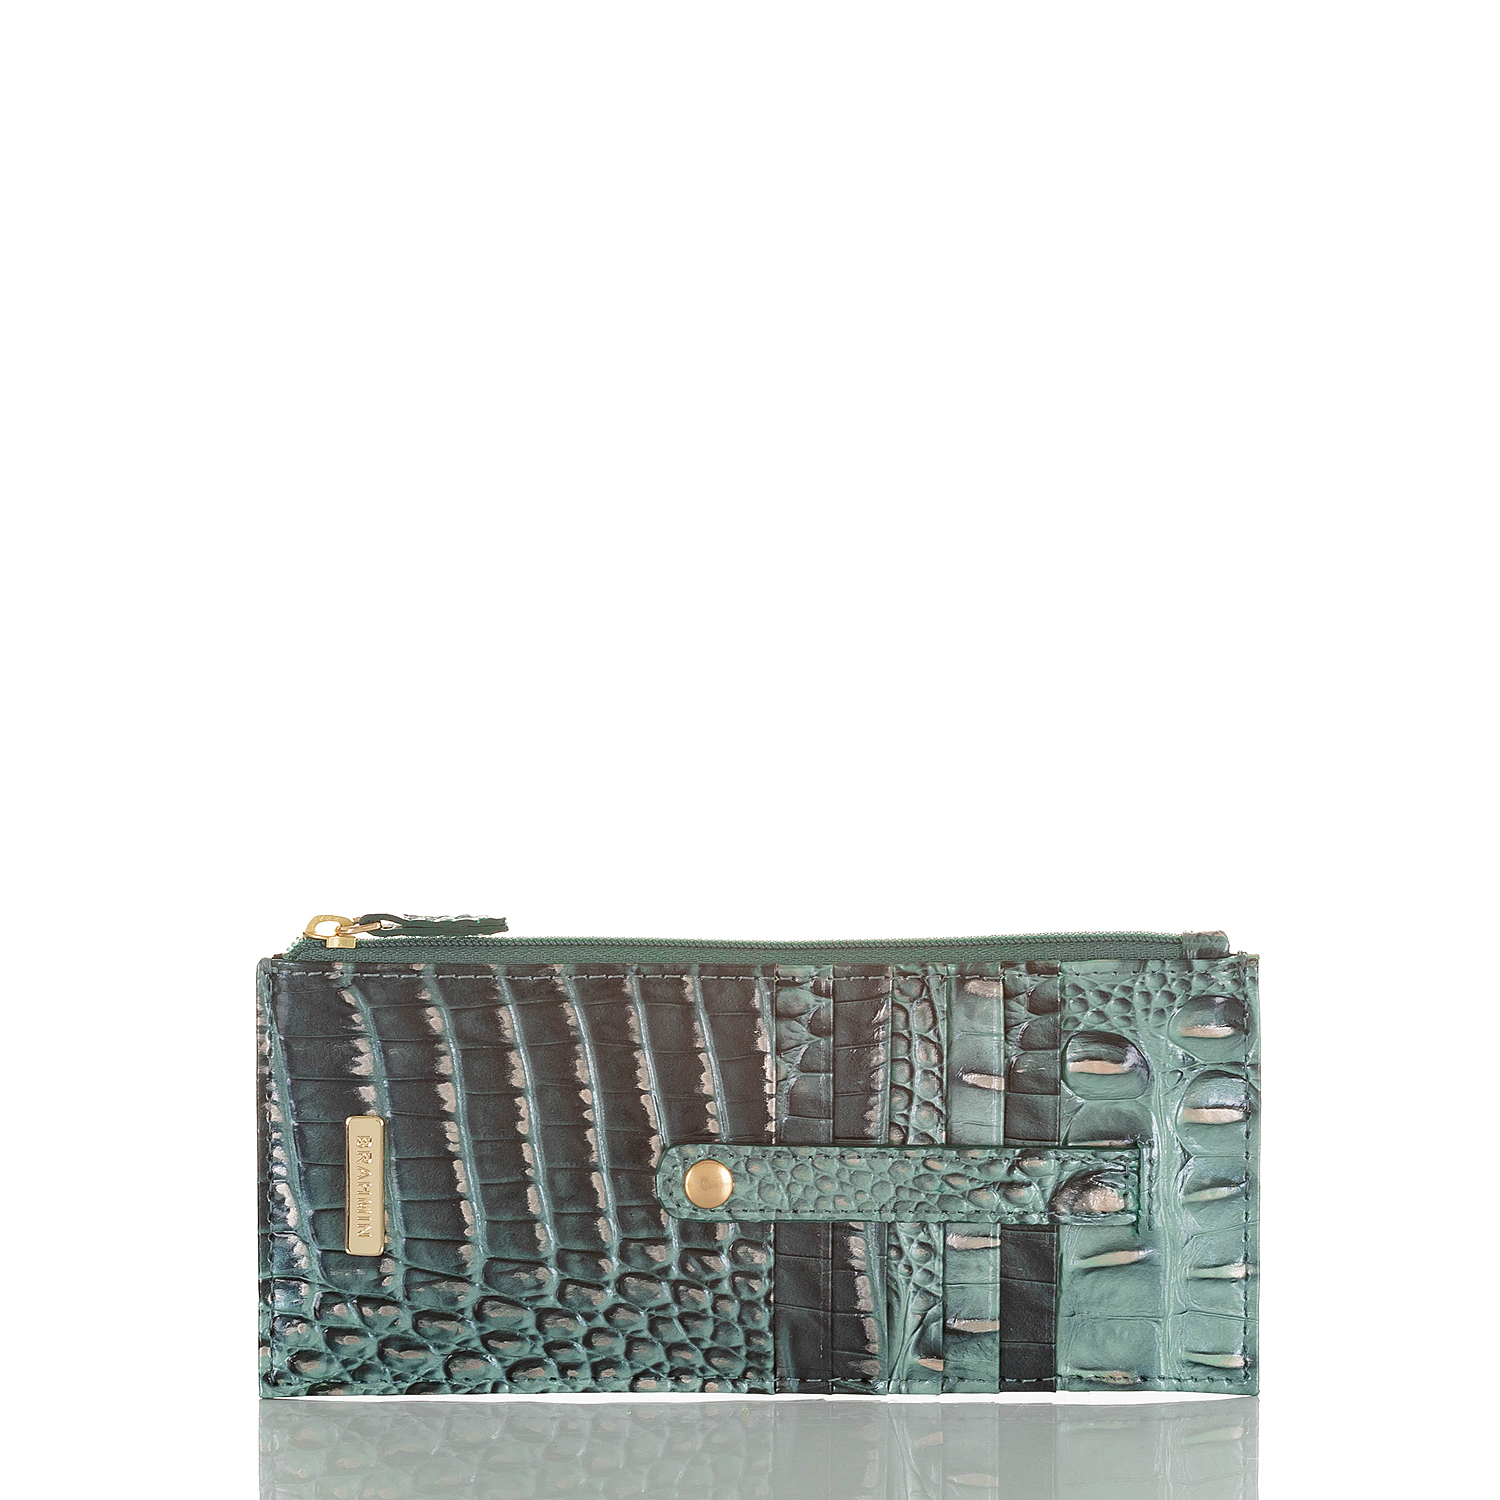 Credit Card Wallet Obsidian Melbourne